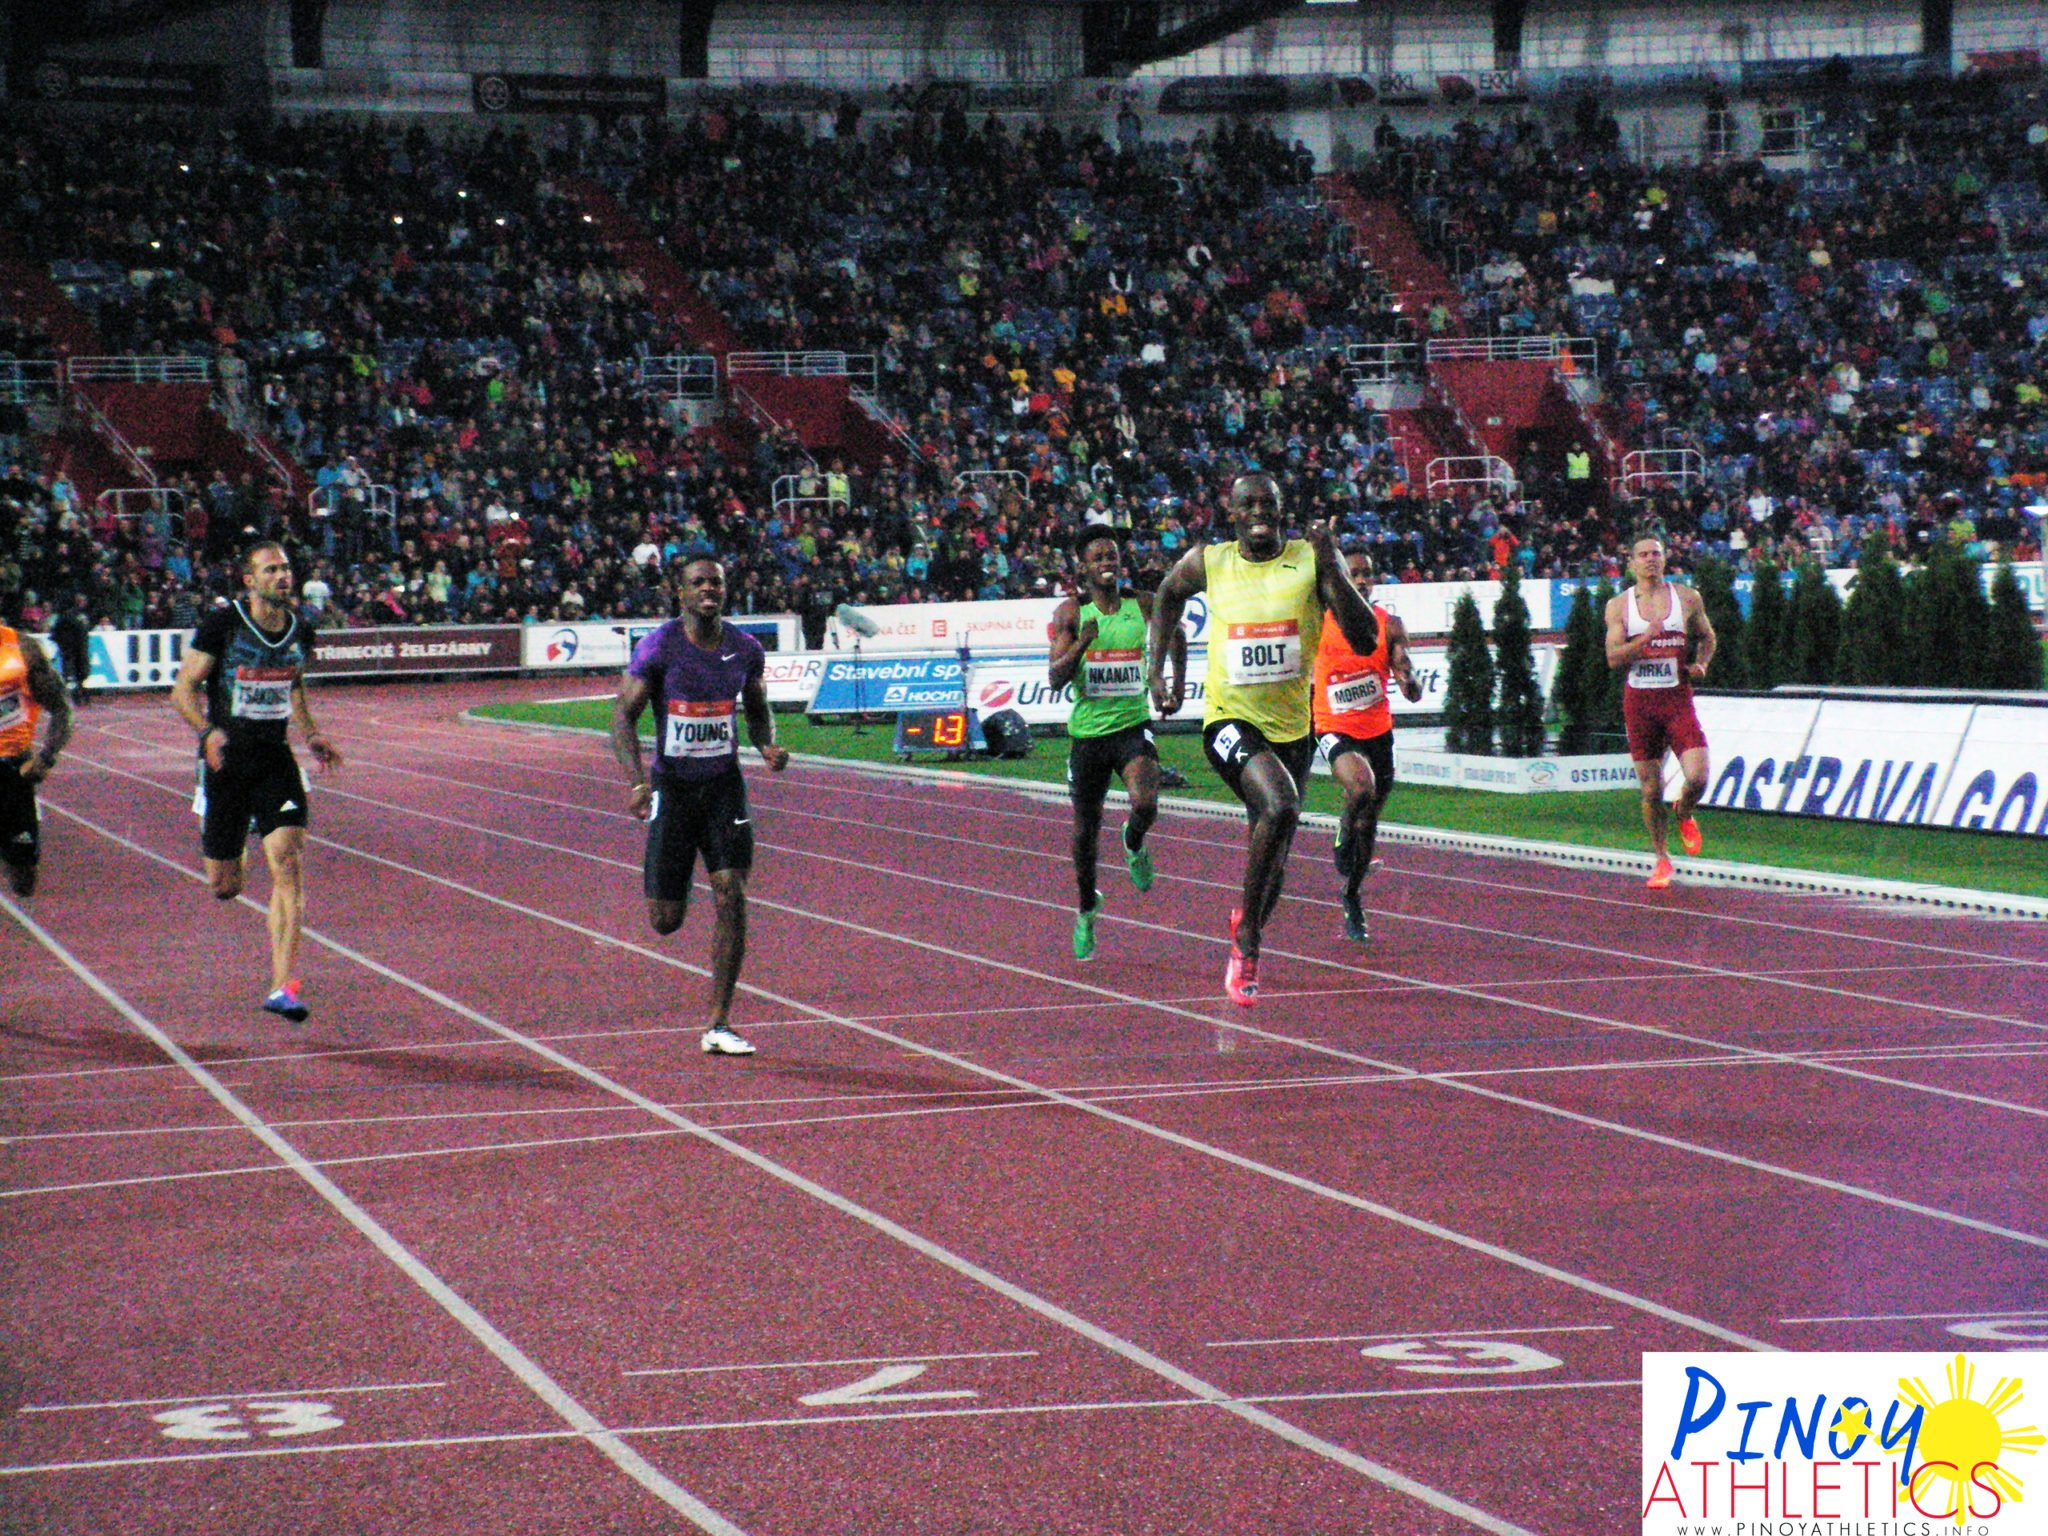 04-Close encounter with Usain Bolt, the lead star of the Ostrava Golden Spike Championships